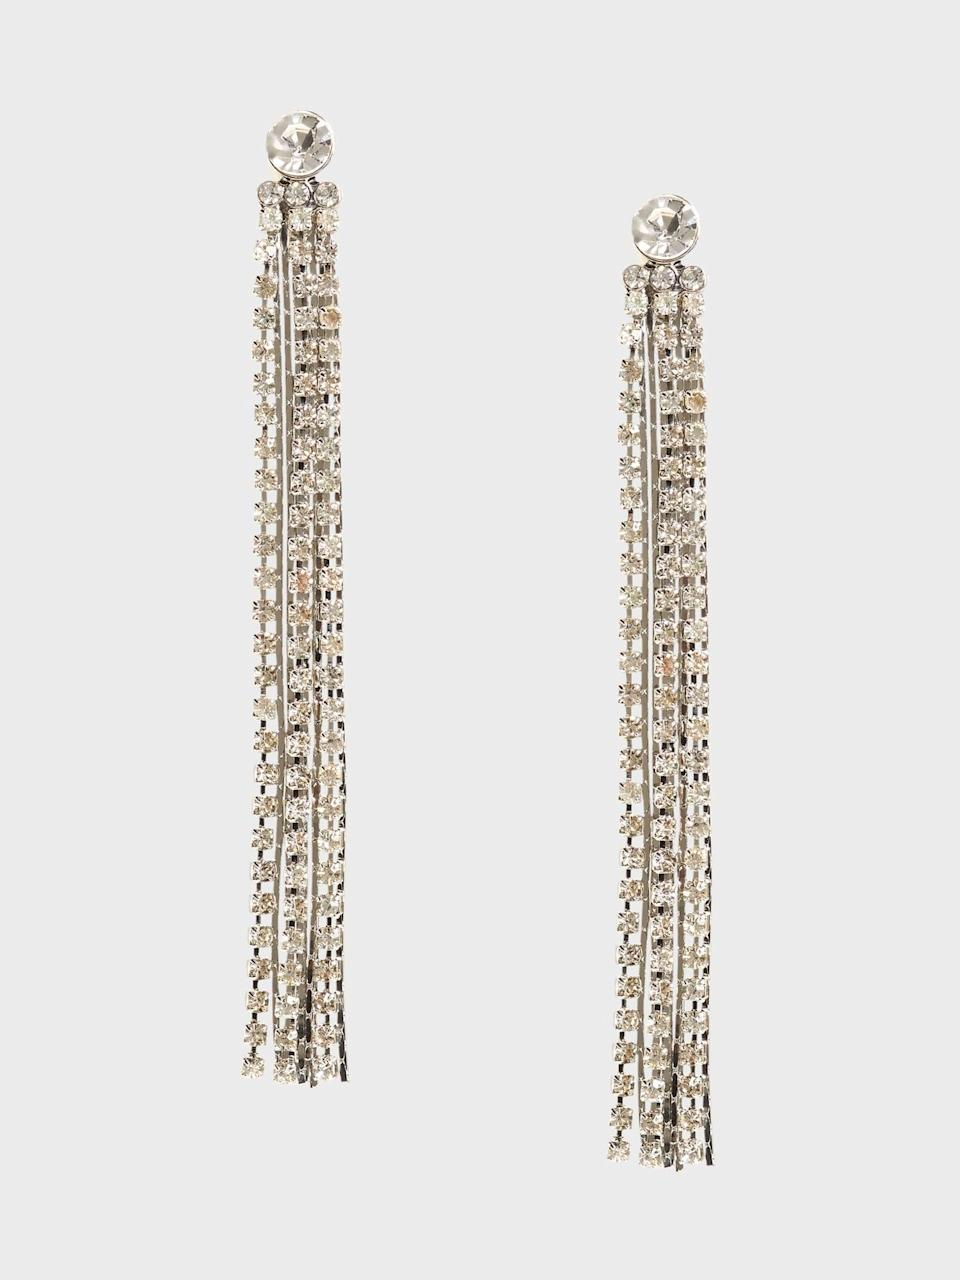 <p>Long lines like these <span>Banana Republic Multi Cupchain Linear Earrings</span> ($23, originally $58) elongate your neck and a little dazzle to viewers eyes!</p>